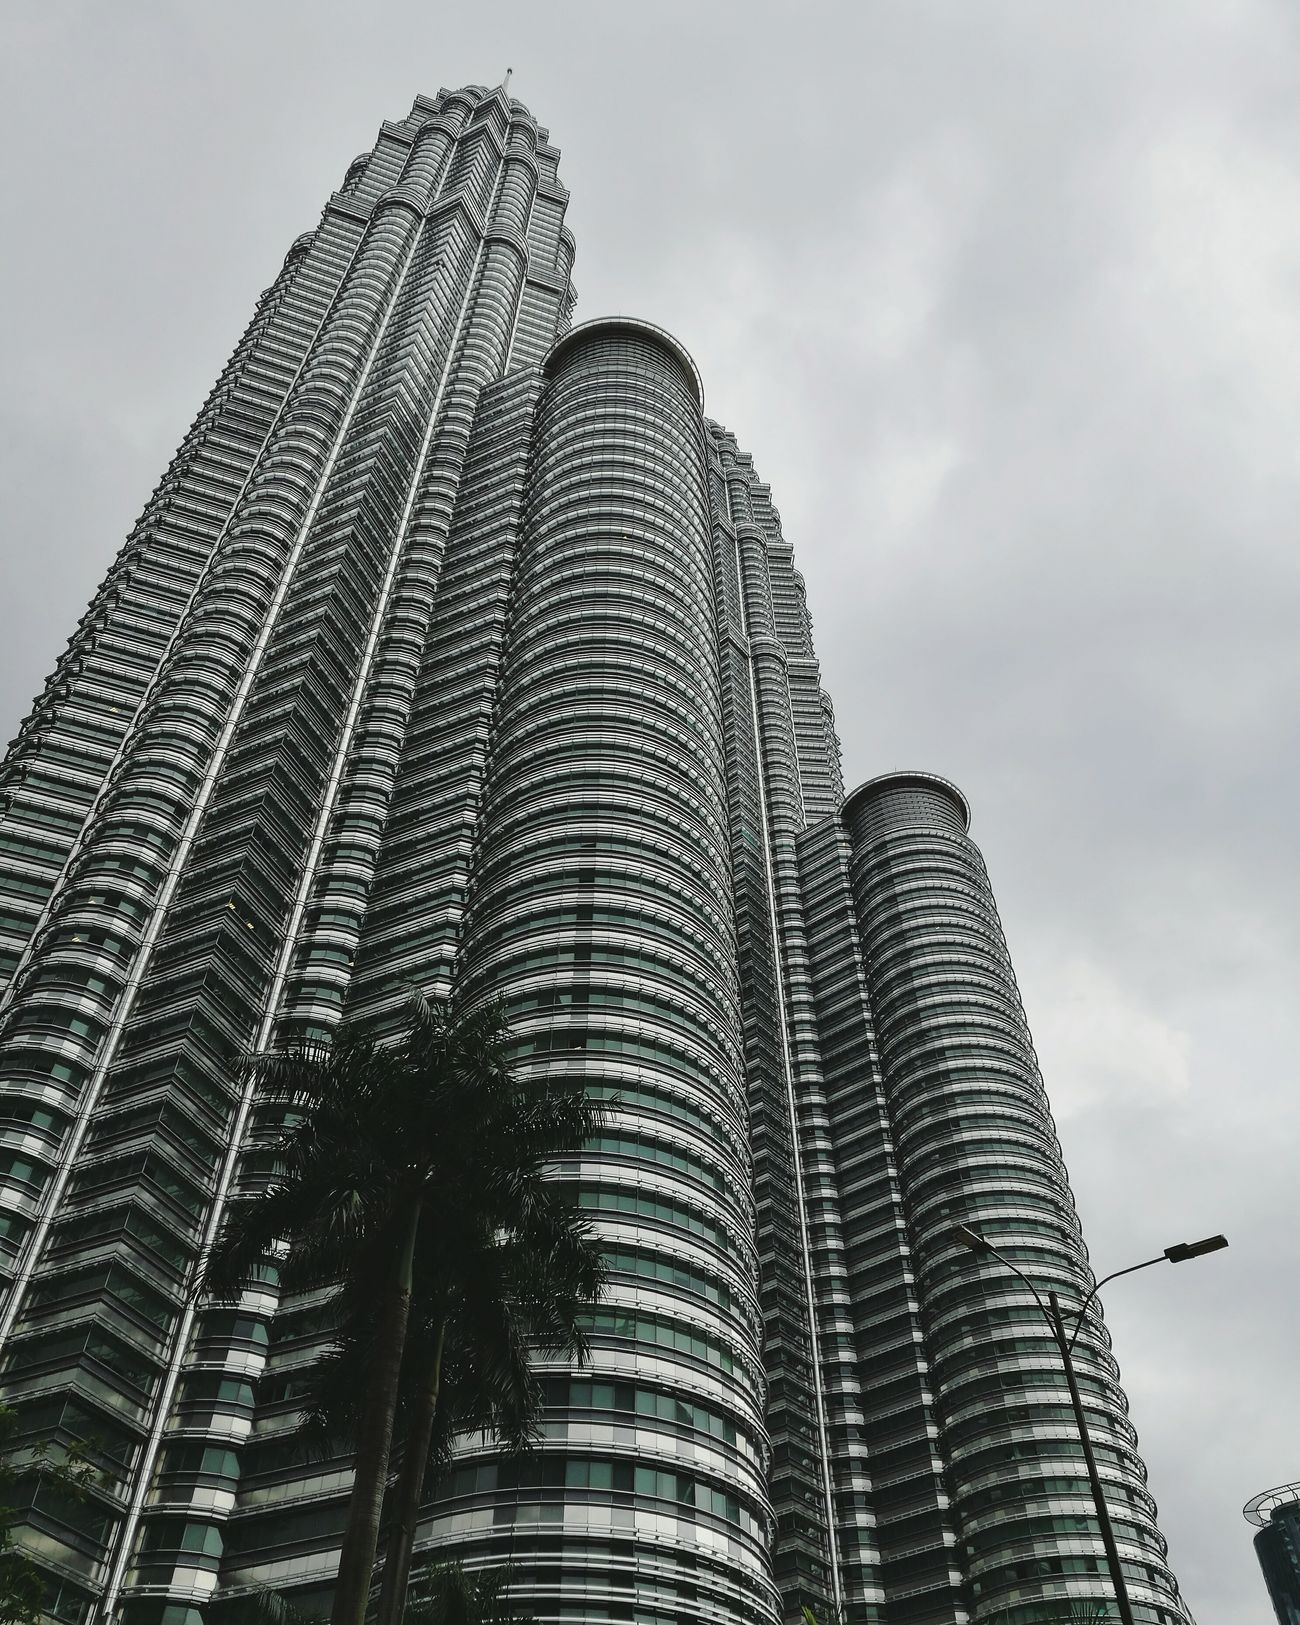 Architecture City Sky Building Exterior Outdoors Built Structure Skyscraper Modern Travel Destinations Cloud - Sky Futuristic No People Day Cityscape KLCC Twin Towers Klcc KLCC Tower Malaysia City Architecture Huaweiphotography HuaweiP9 Huawei P9 Leica Huawei Huaweip9photos